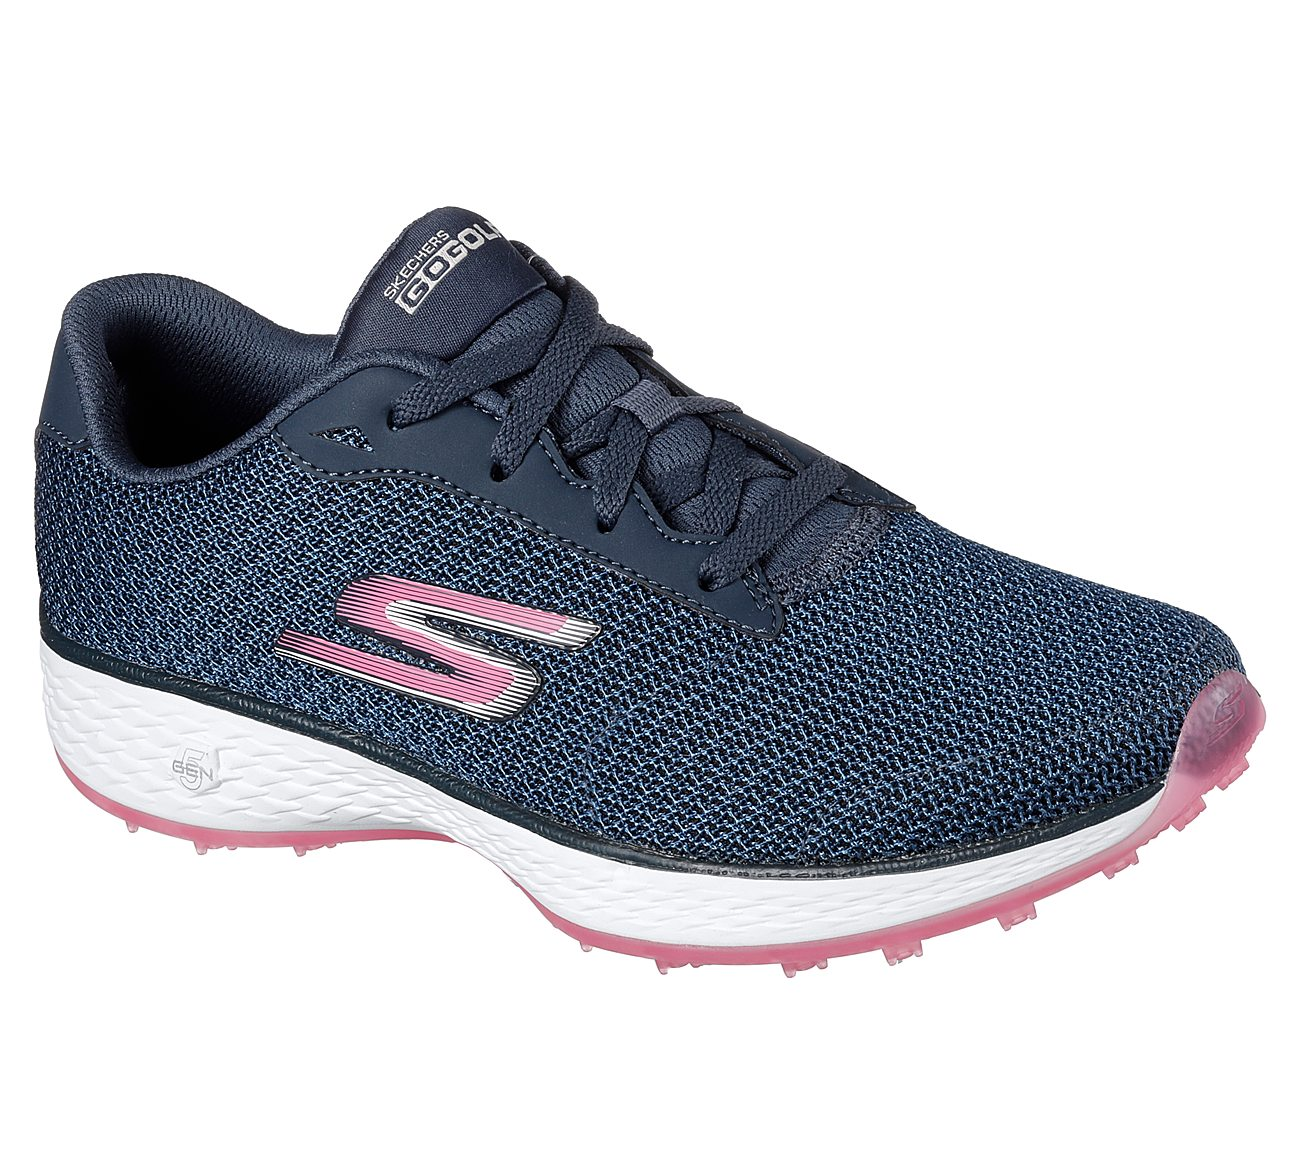 Skechers Women's Go Golf Eagle Golf Shoe - Navy/Pink